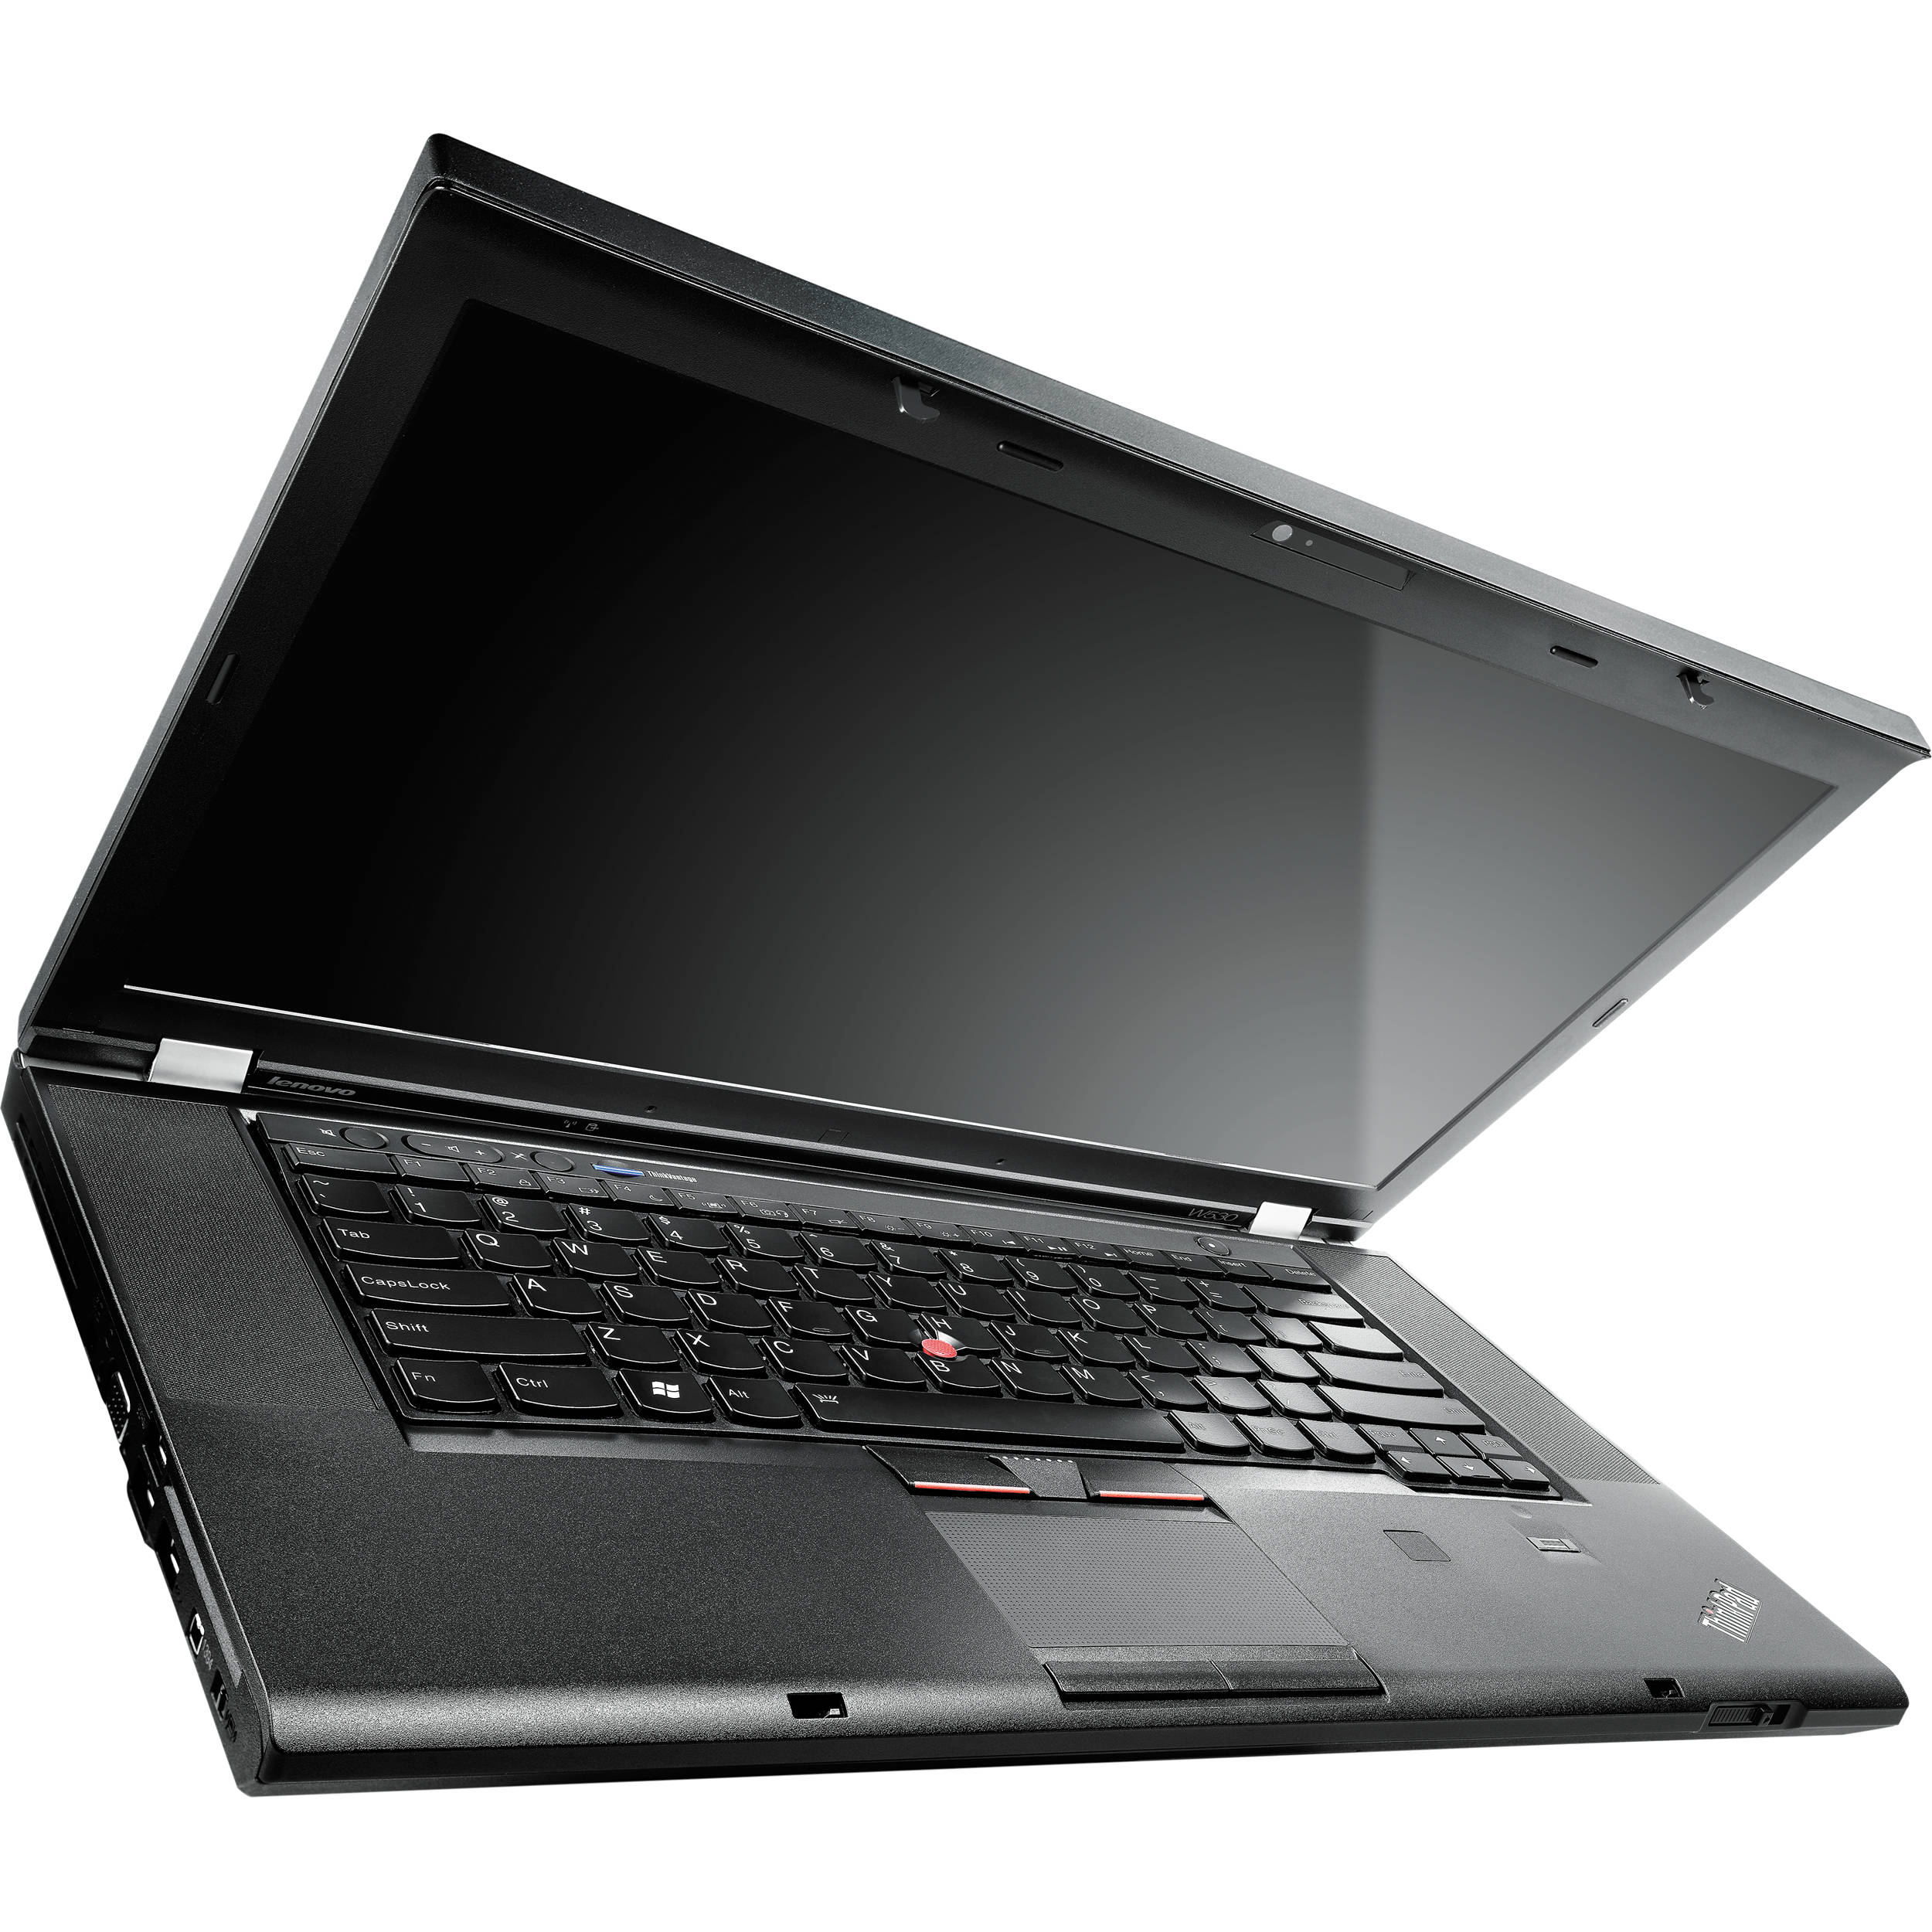 Lenovo ThinkPad W530 Intel WiDi Drivers Windows